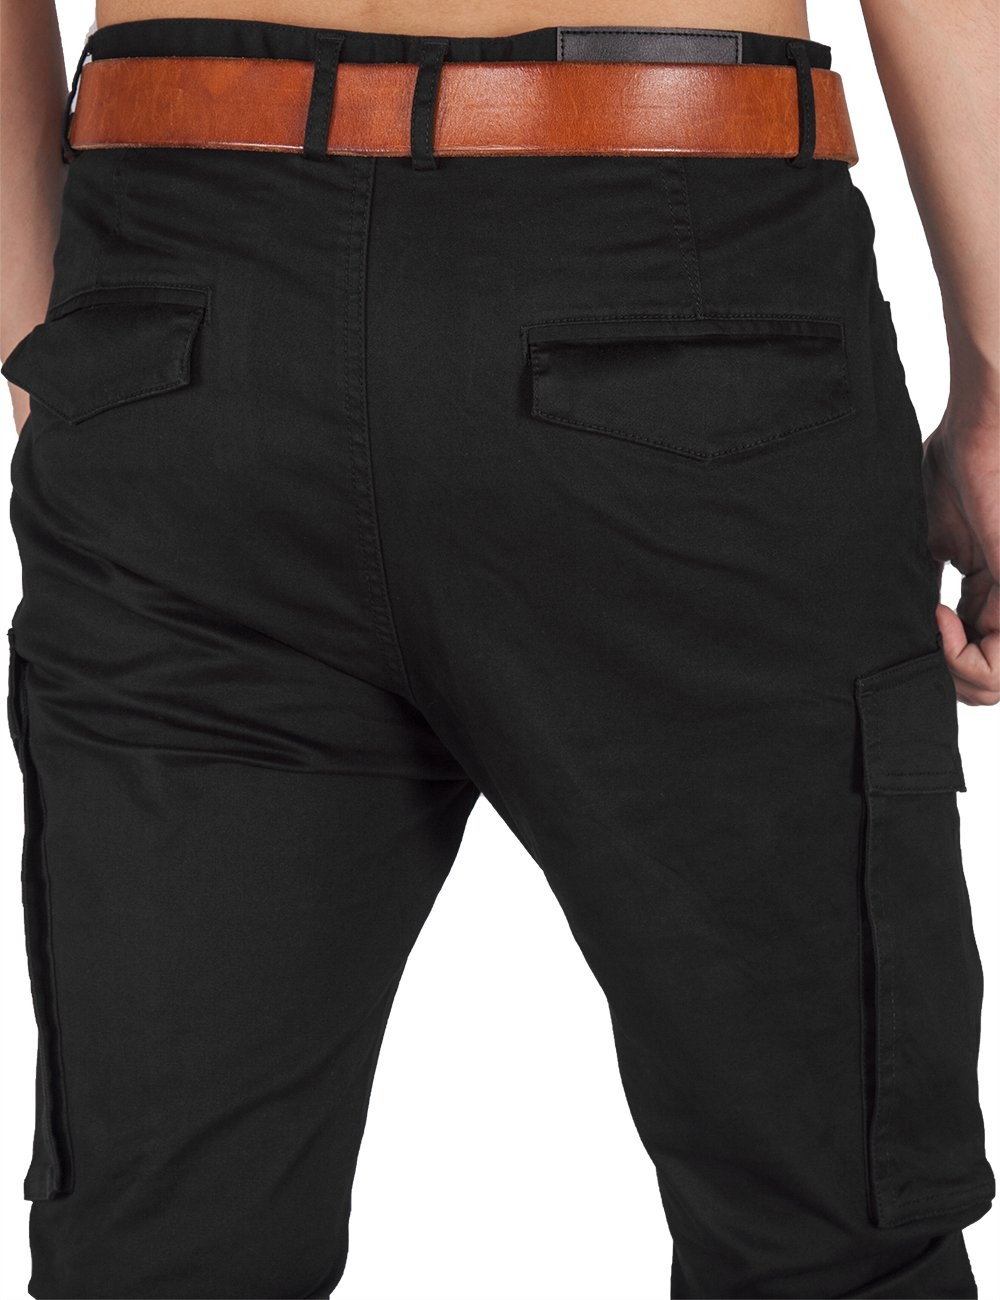 ITALY MORN Men Chino Cargo Jogger Pants Casual Twill Khakis Slim fit Black (S, Black) by ITALY MORN (Image #6)